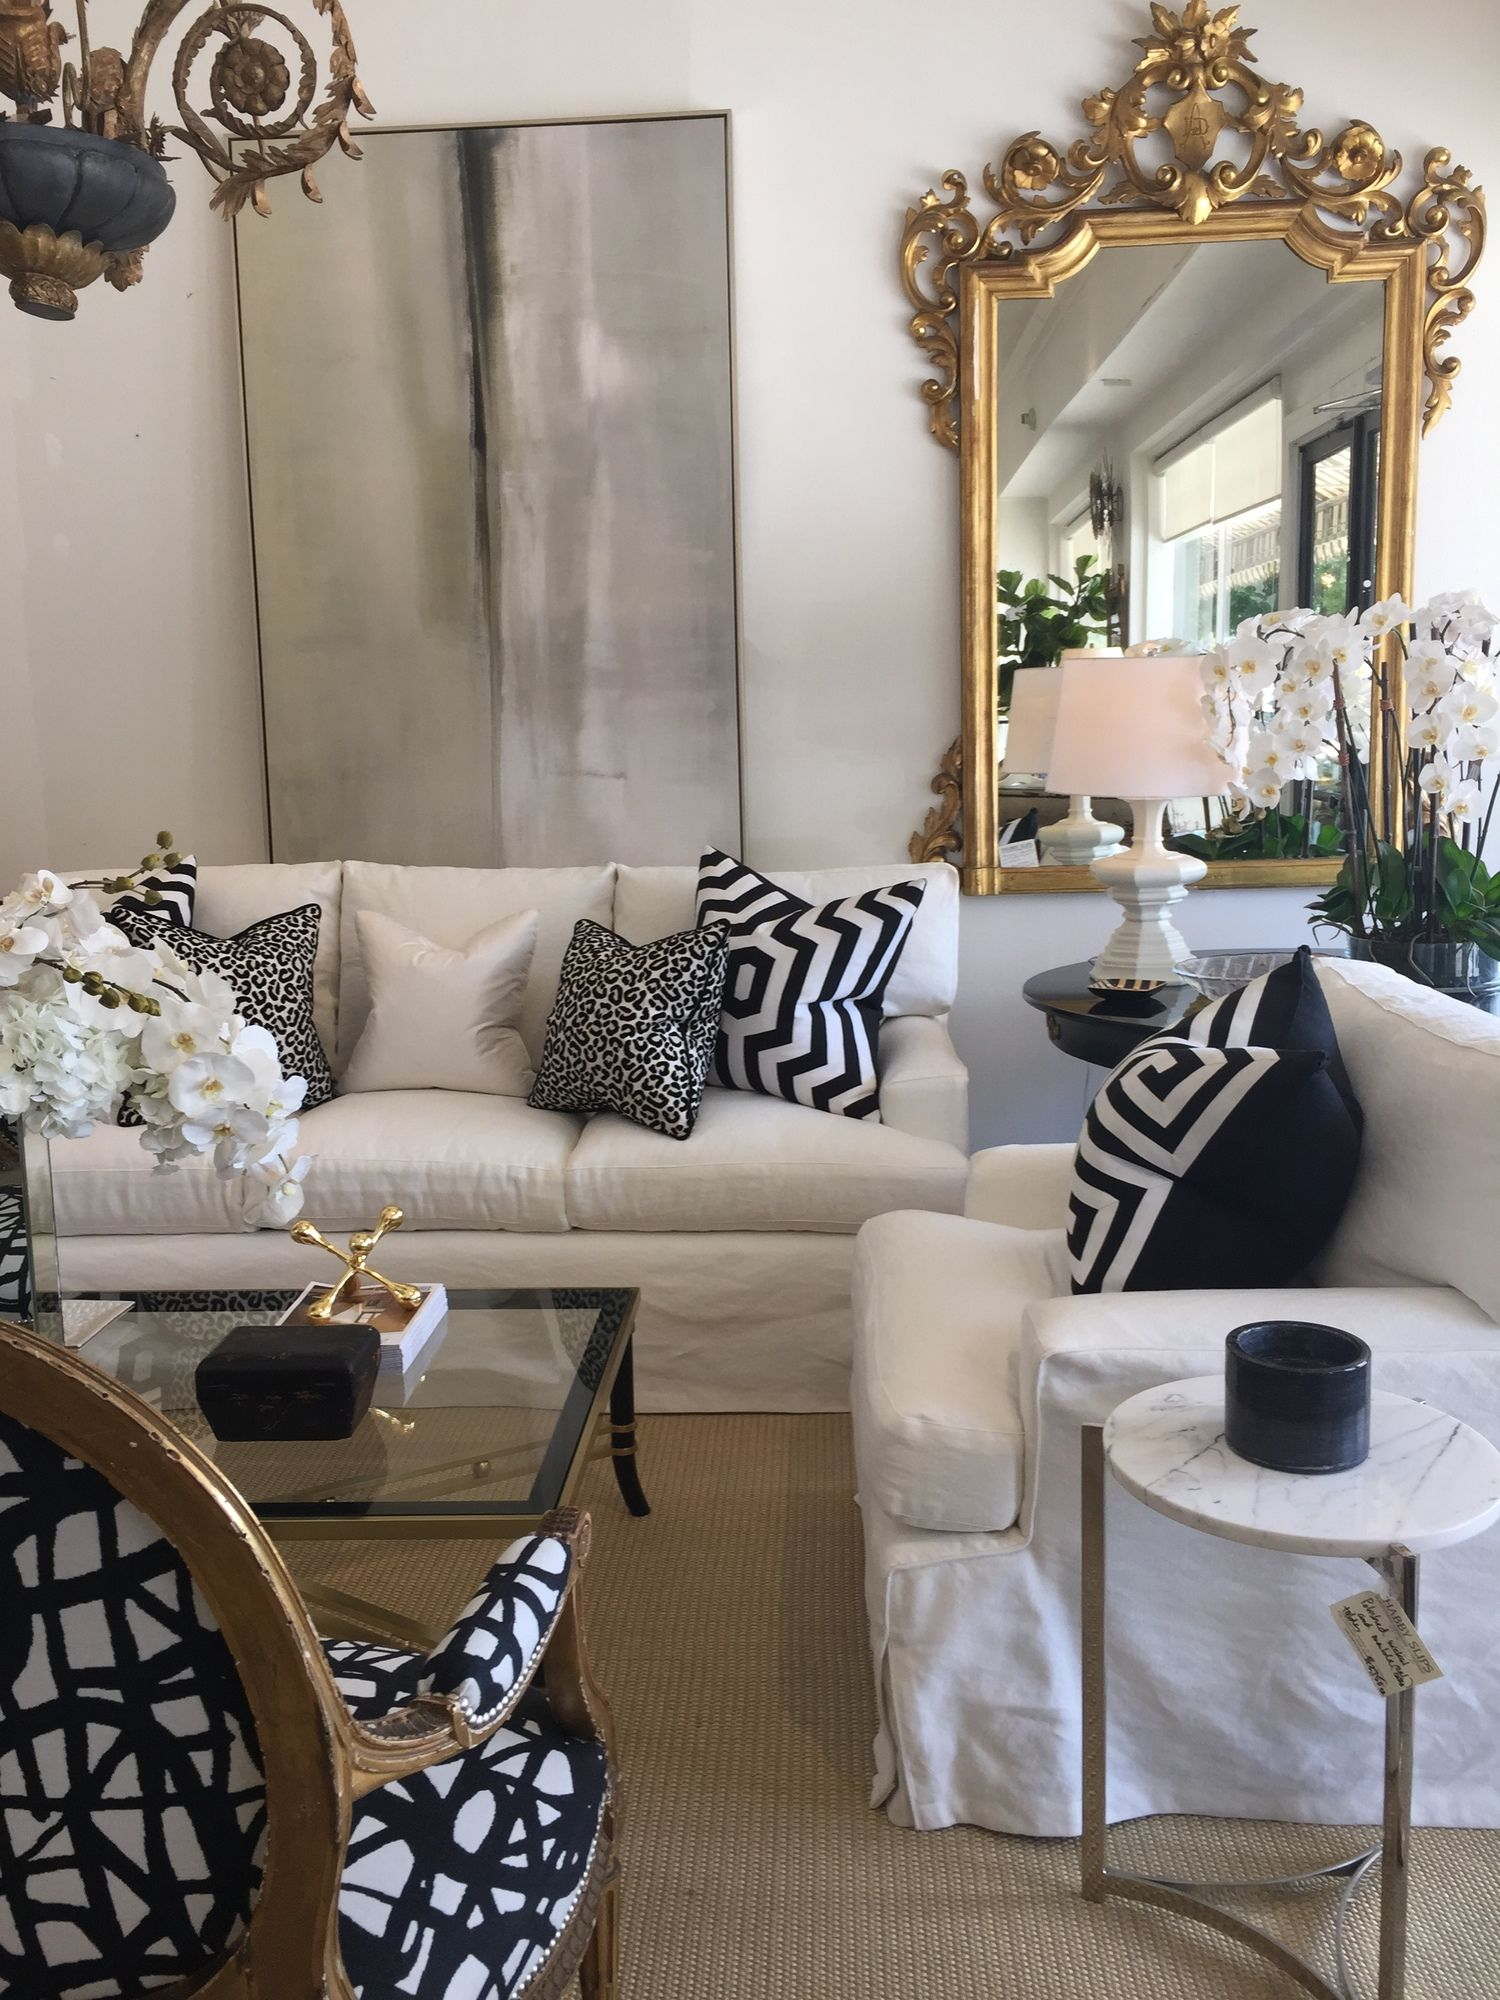 I Have Done A Lot And I Mean A Lot Of Shopping While In Houston I Never Realized How Much This City Had T Home Decor Shabby Chic Apartment Home Decor